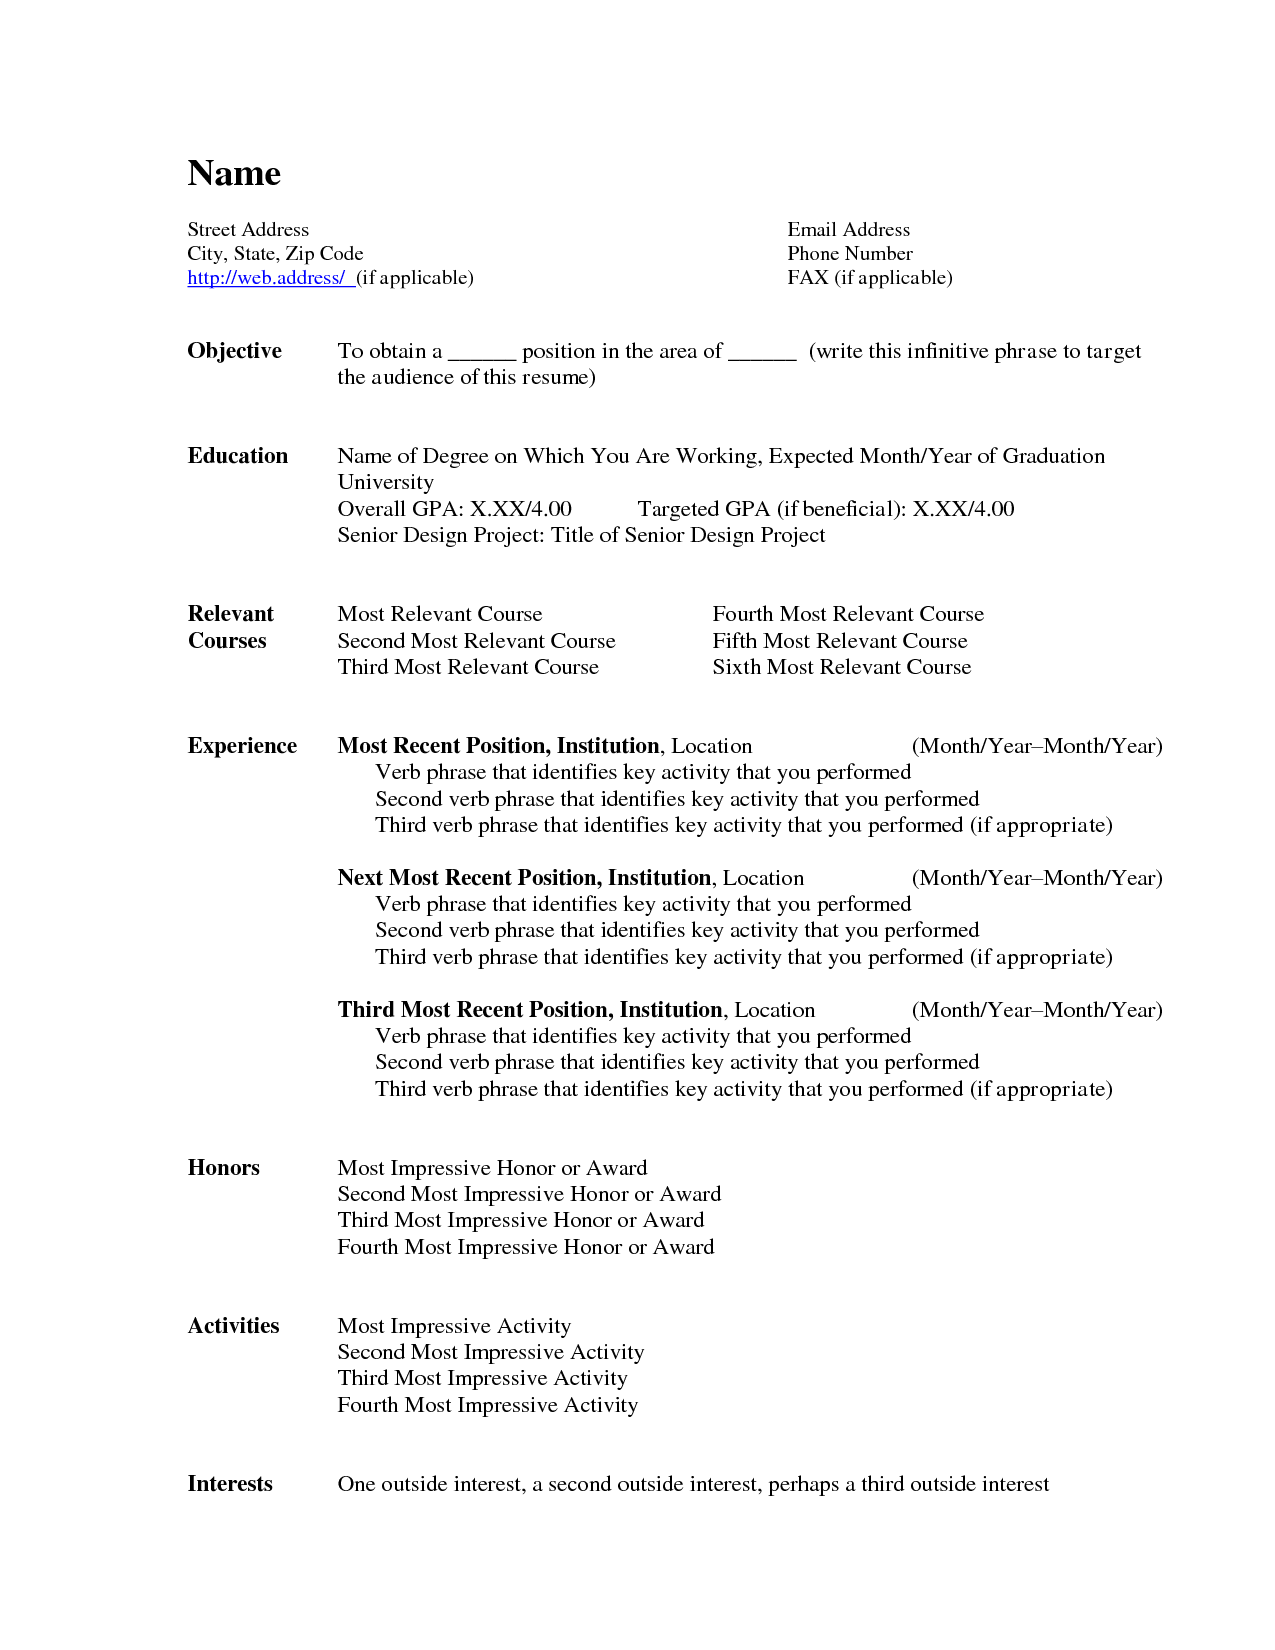 Microsoft Word Resume Template Builder Http Job  How To Create A Resume On Microsoft Word